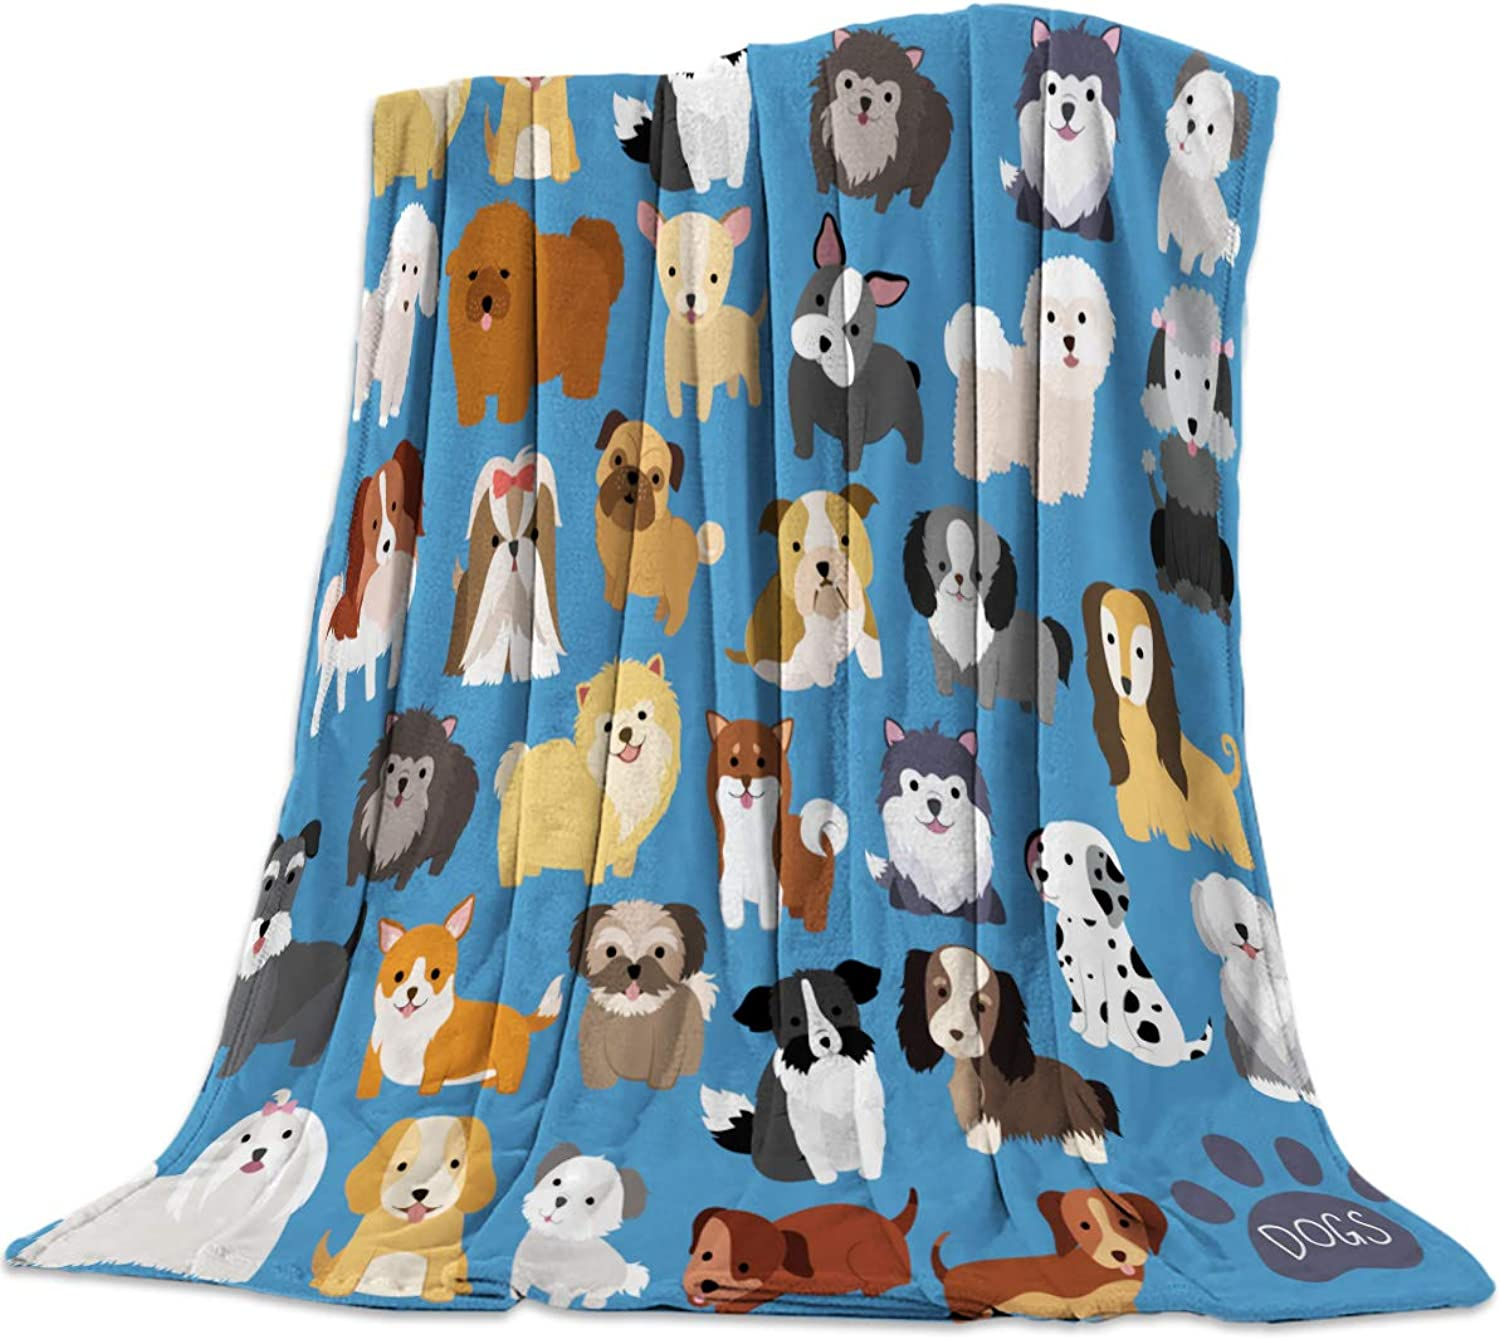 Luck Sky Lightweight Throw Blanket Doggy Blankets, Illustration Cartoon Puppy Dog Flannel Soft Cozy Bed Cover for Kids Baby Men Women Home Office Cars 40 x50